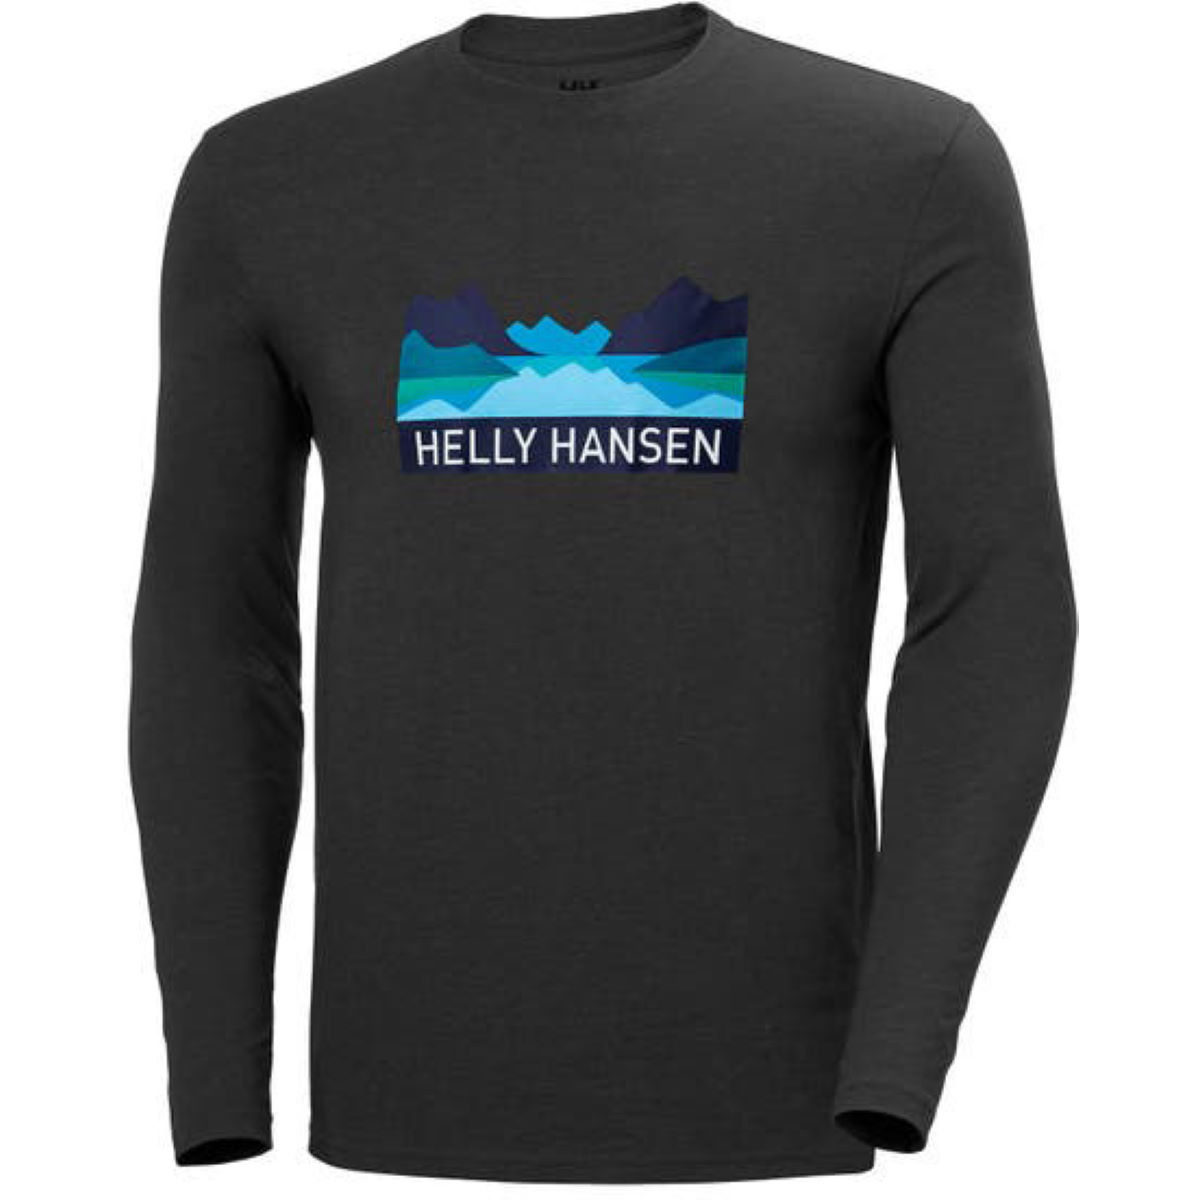 Helly Hansen Helly Hansen Nord Graphic Long Sleeve T-Shirt   T-Shirts